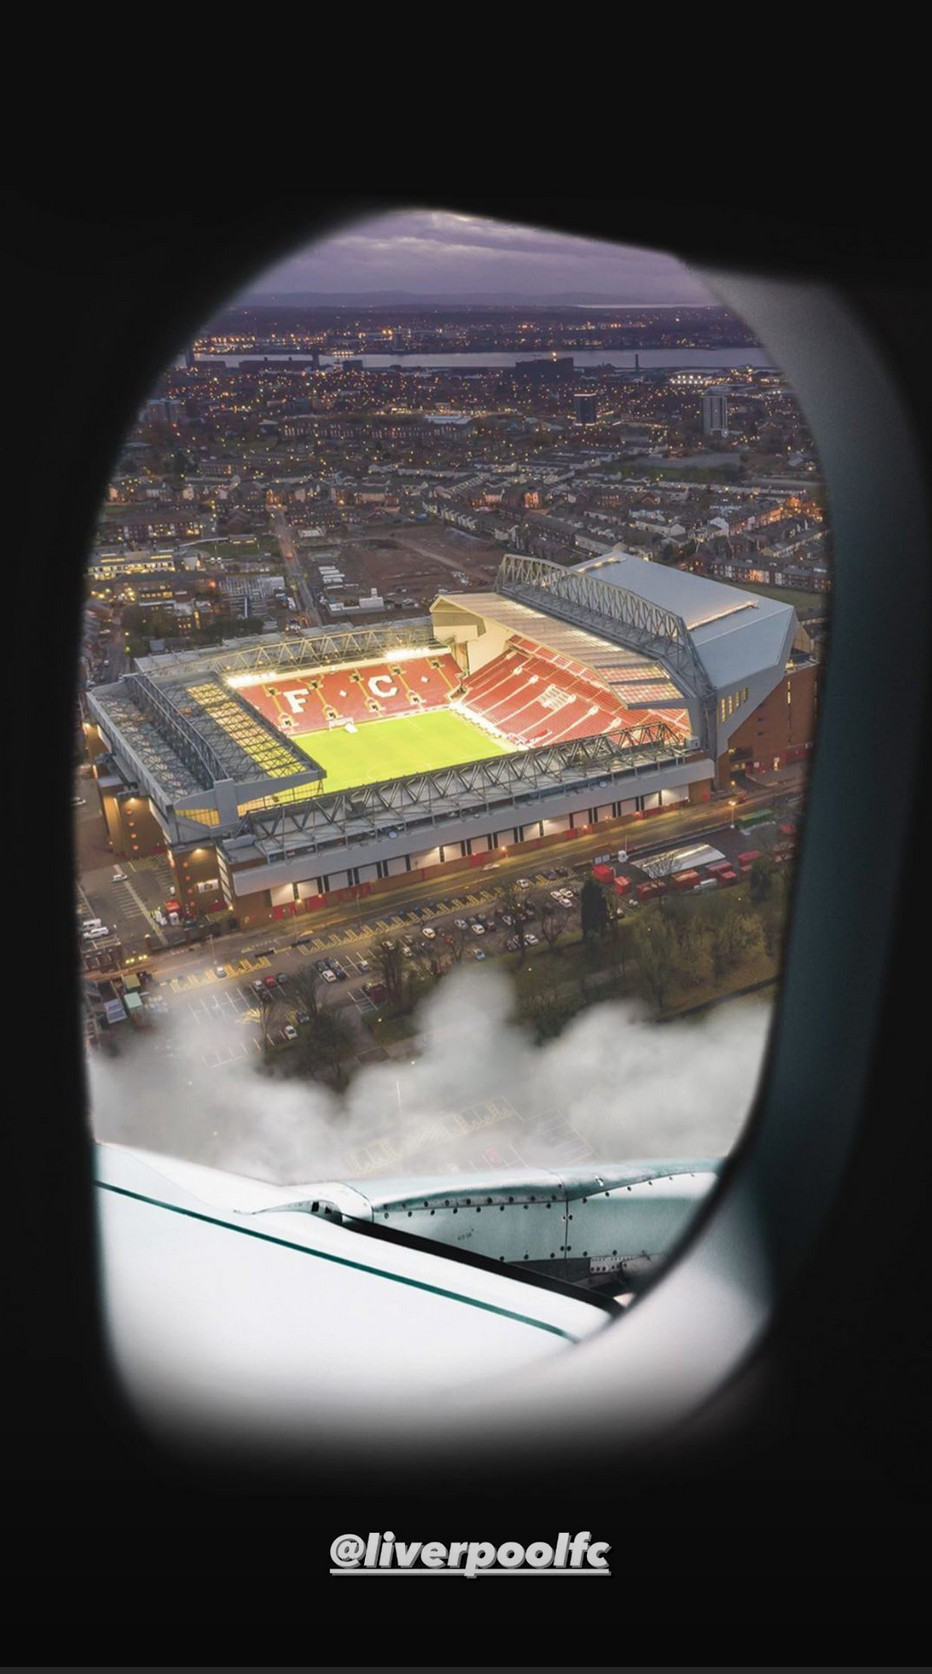 Anfield is captured from a plane window, empty and lit up at night